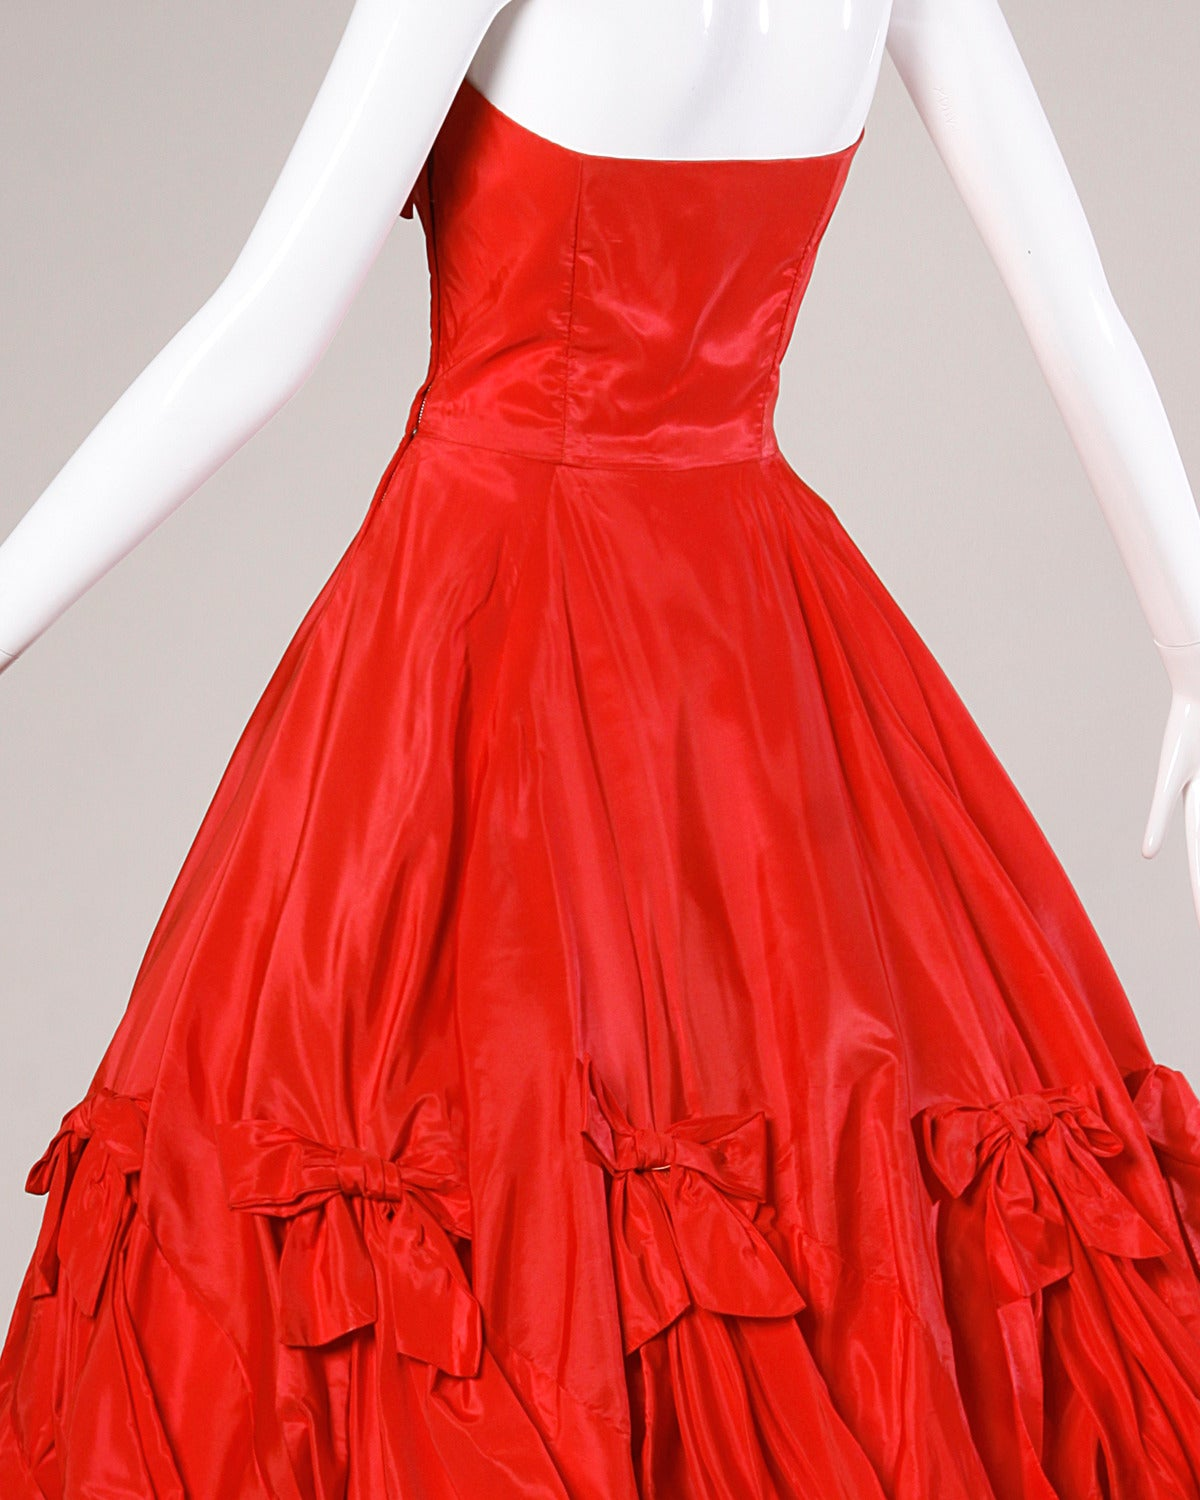 1950s Vintage Red Taffeta Full Sweep Party Dress with Bubble Hem 6